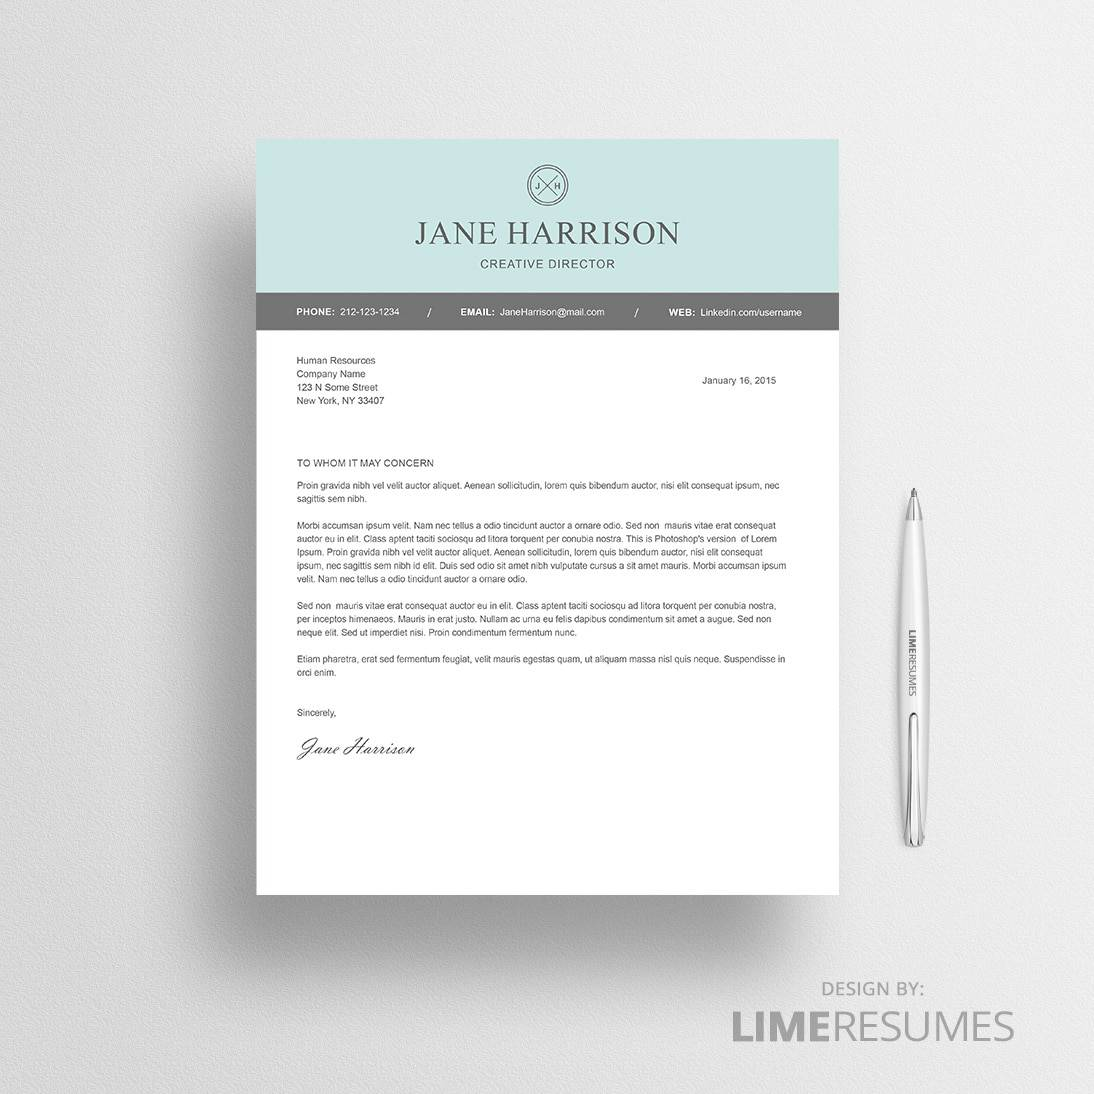 modern cover letter template for word - Modern Cover Letter Template